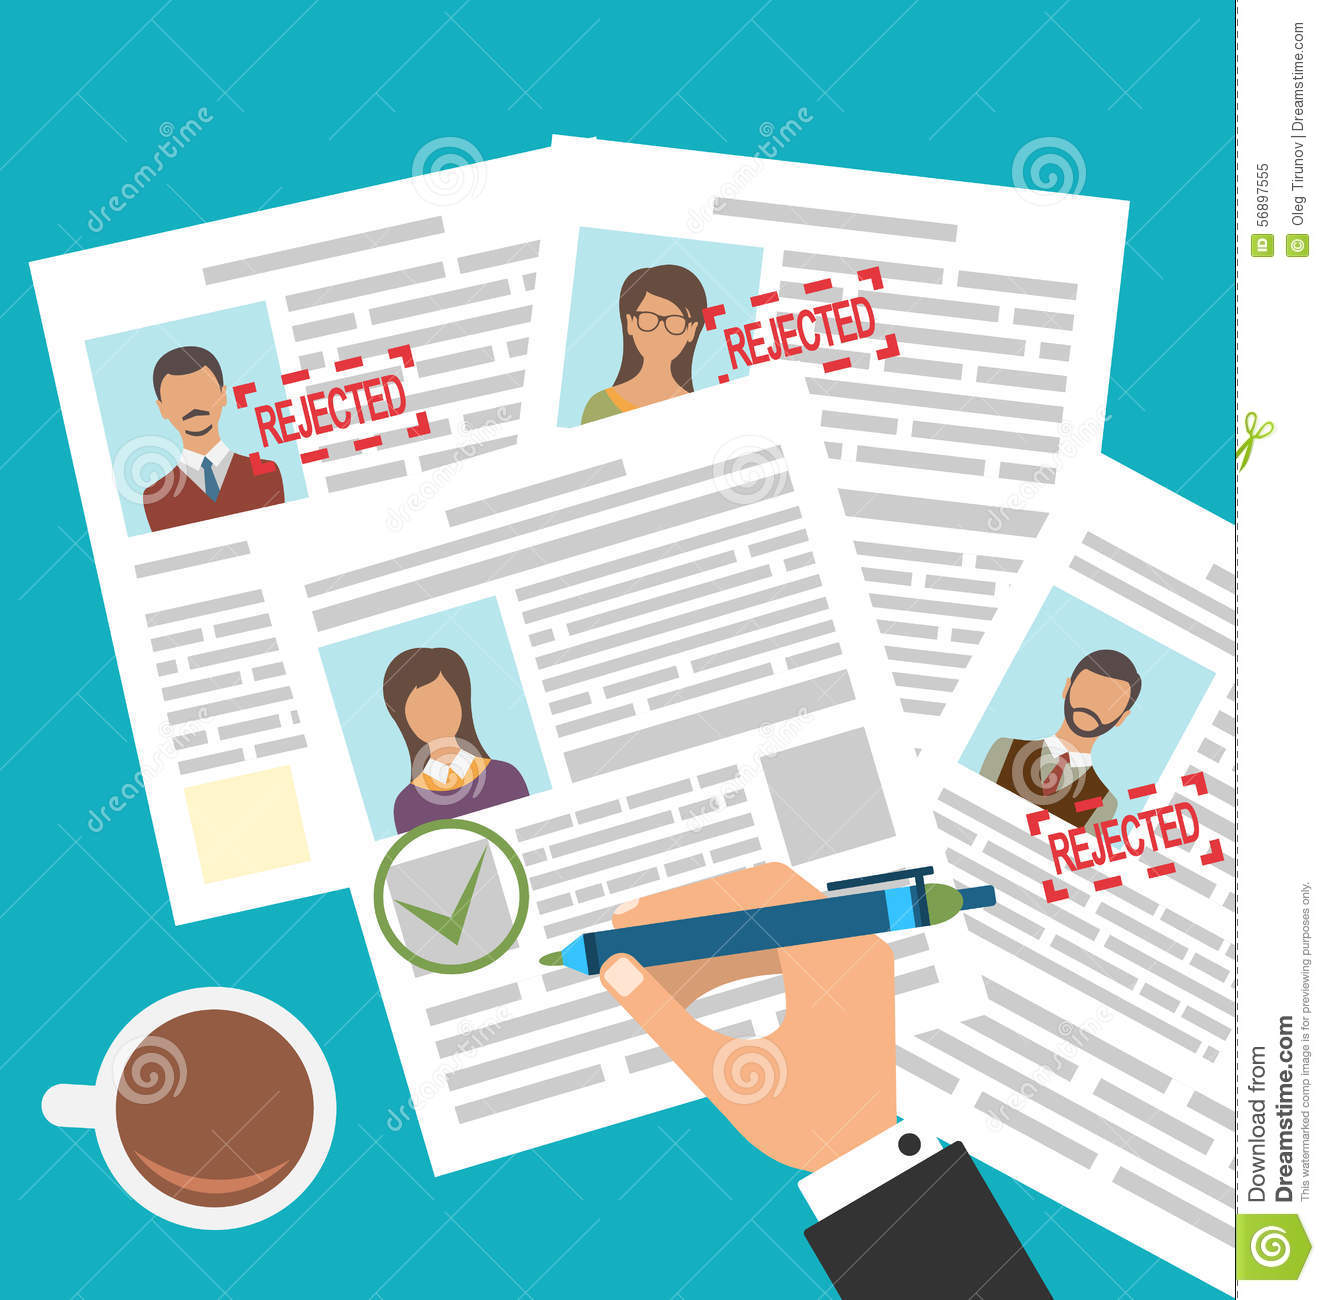 approved candidate resume cartoon vector